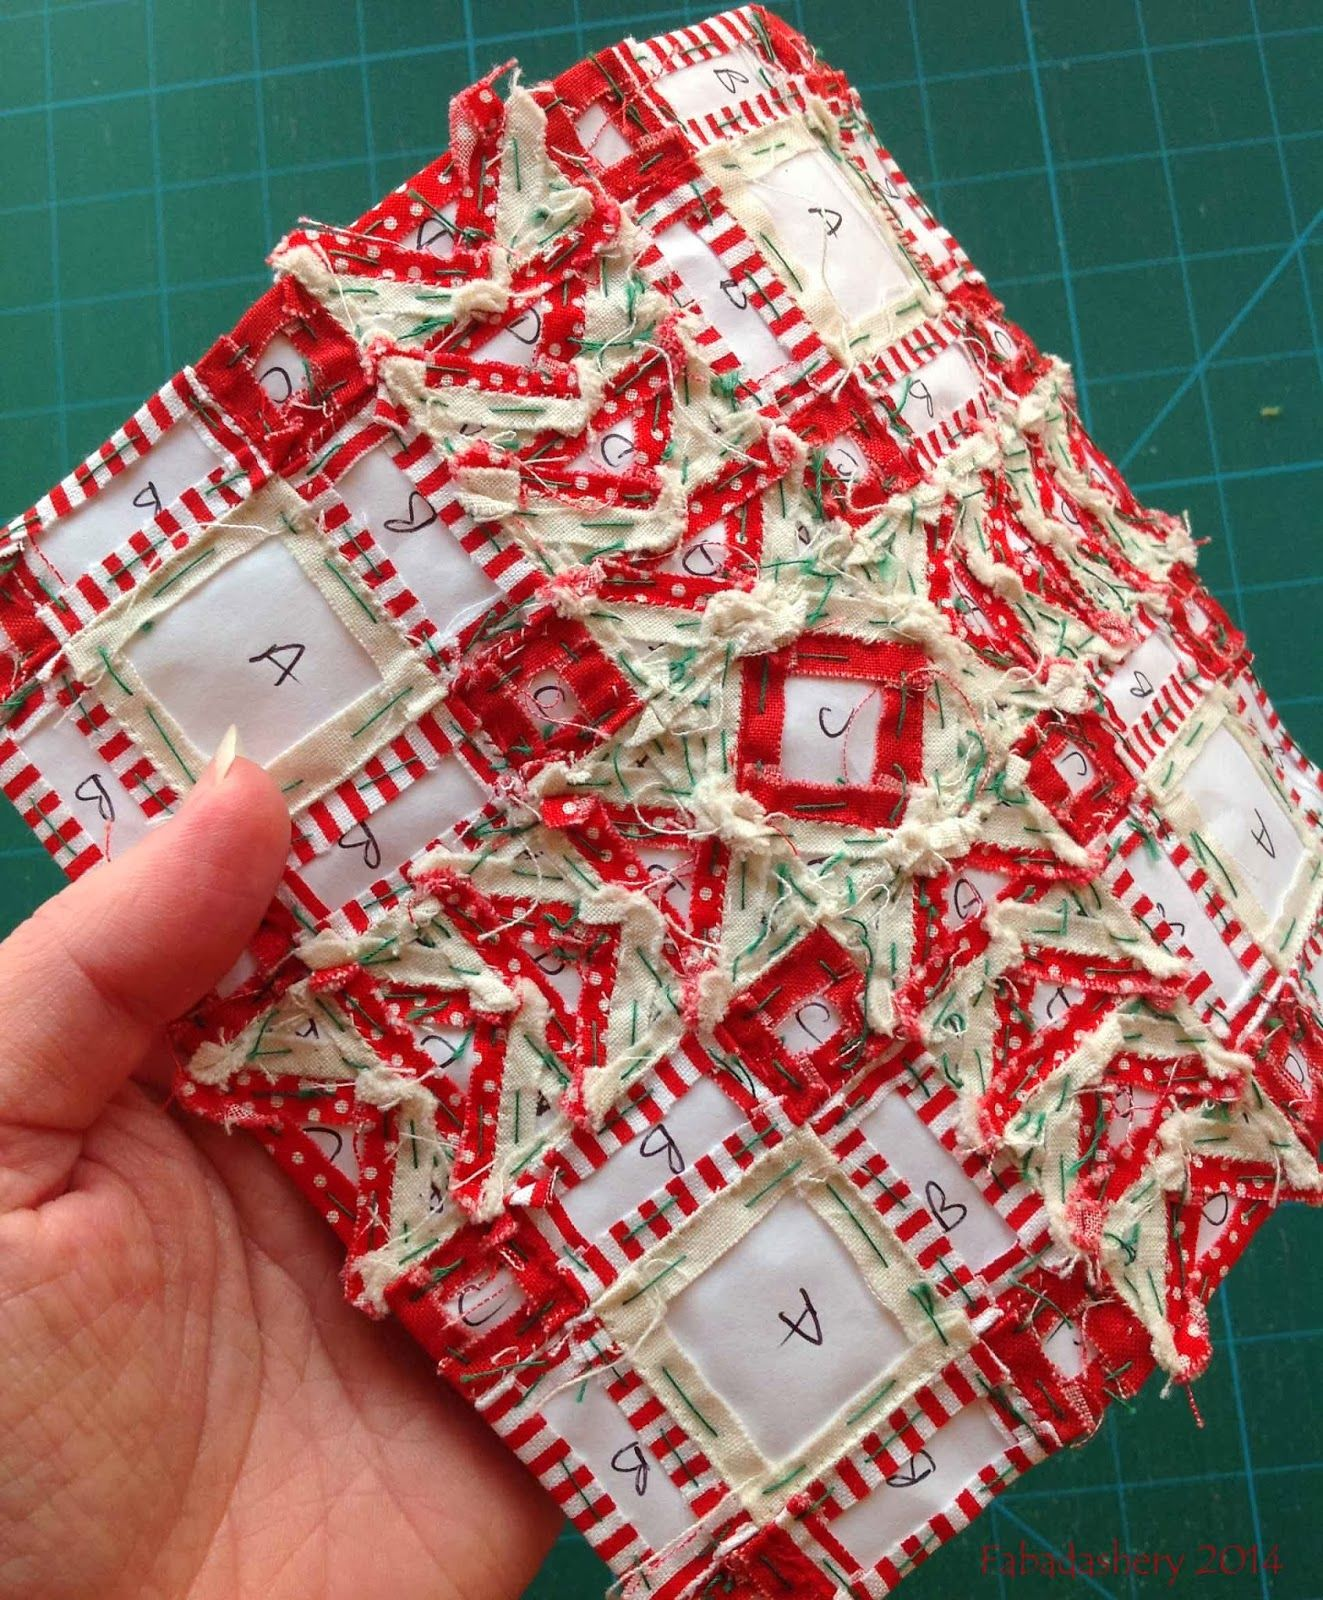 English Paper Piecing - Nearly Insane Quilt | Quilts, Quilts ... : paper pieced quilts - Adamdwight.com